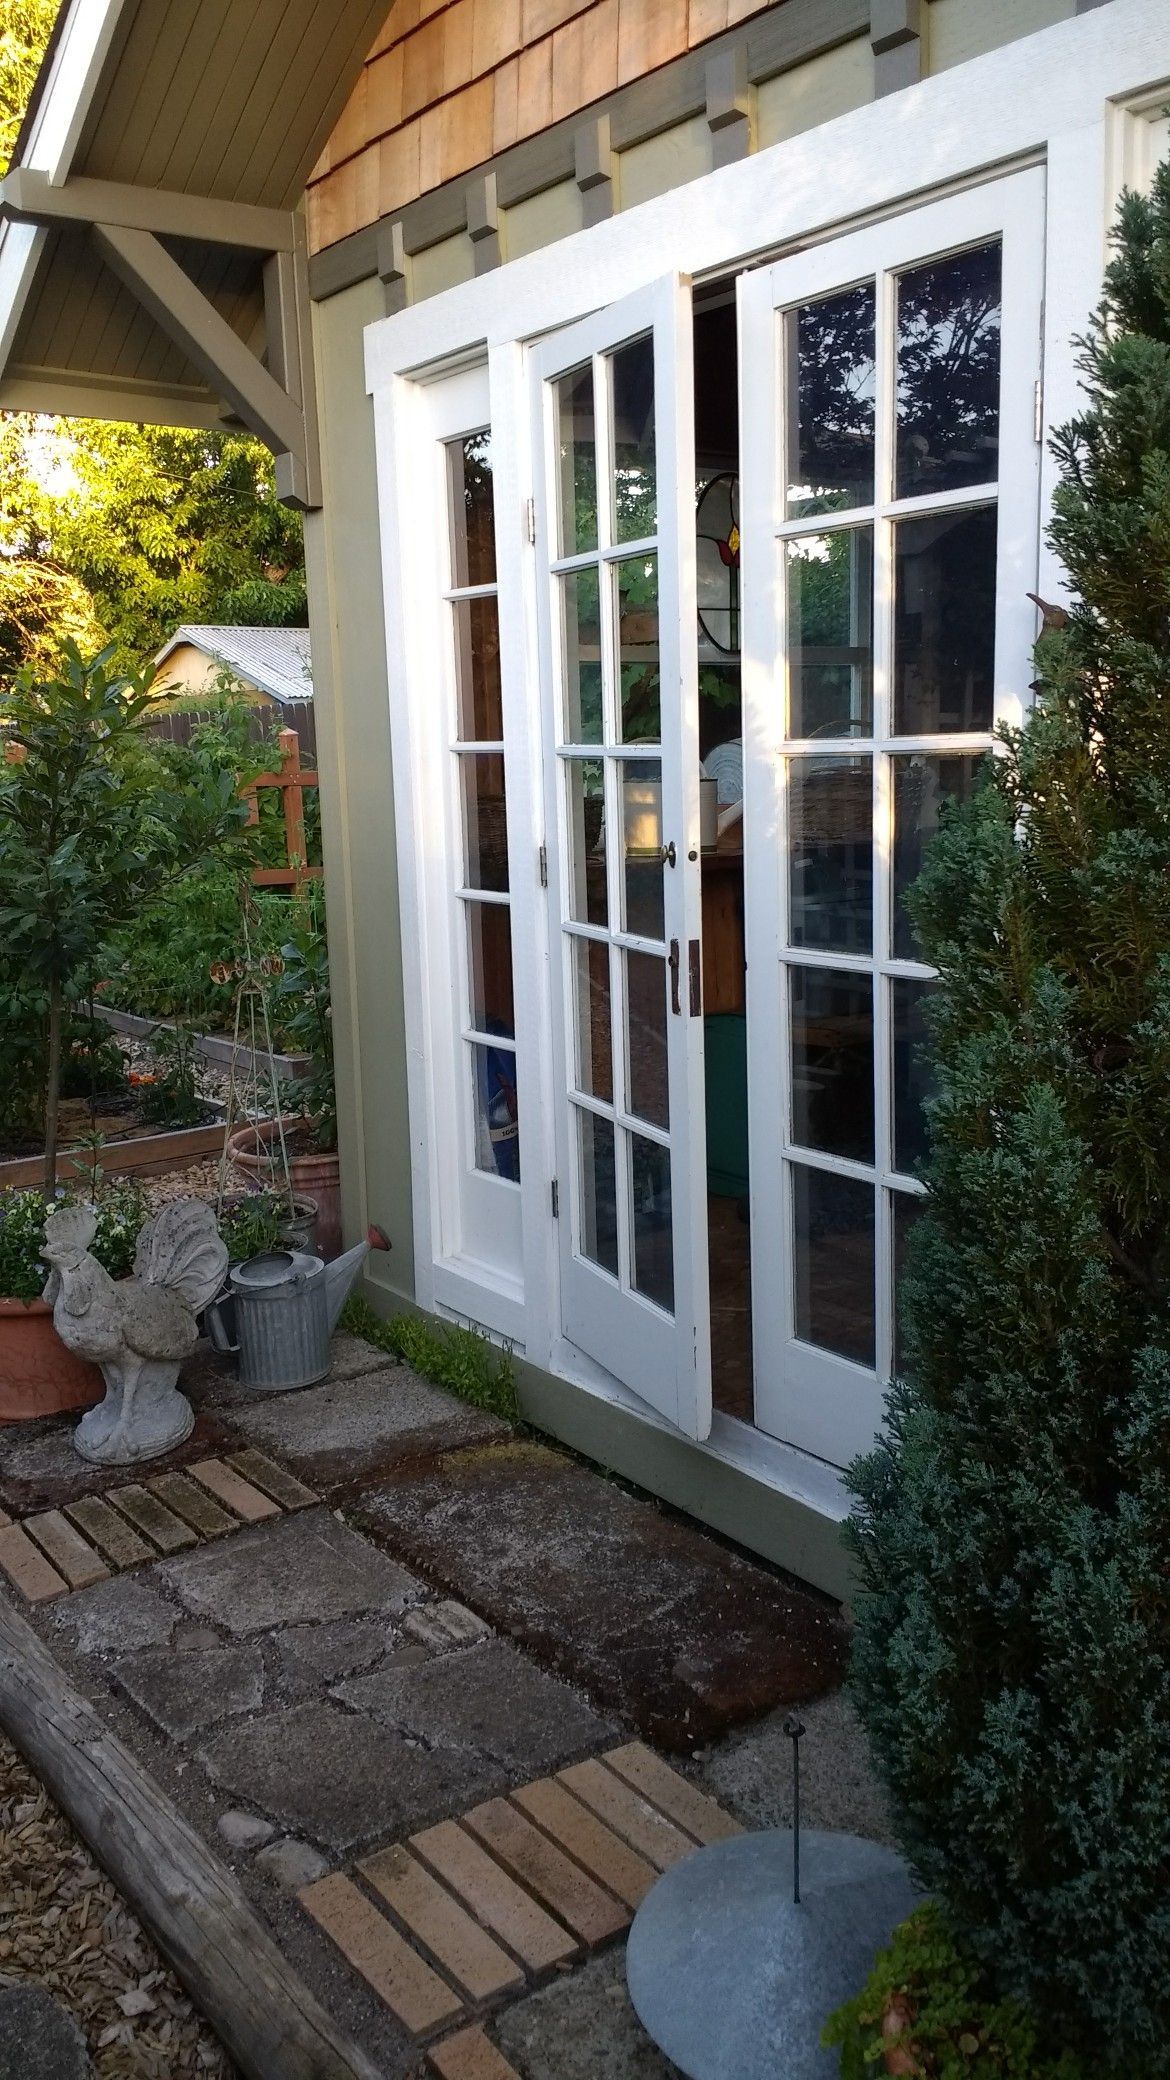 French doors on garden shed garden structures outdoor